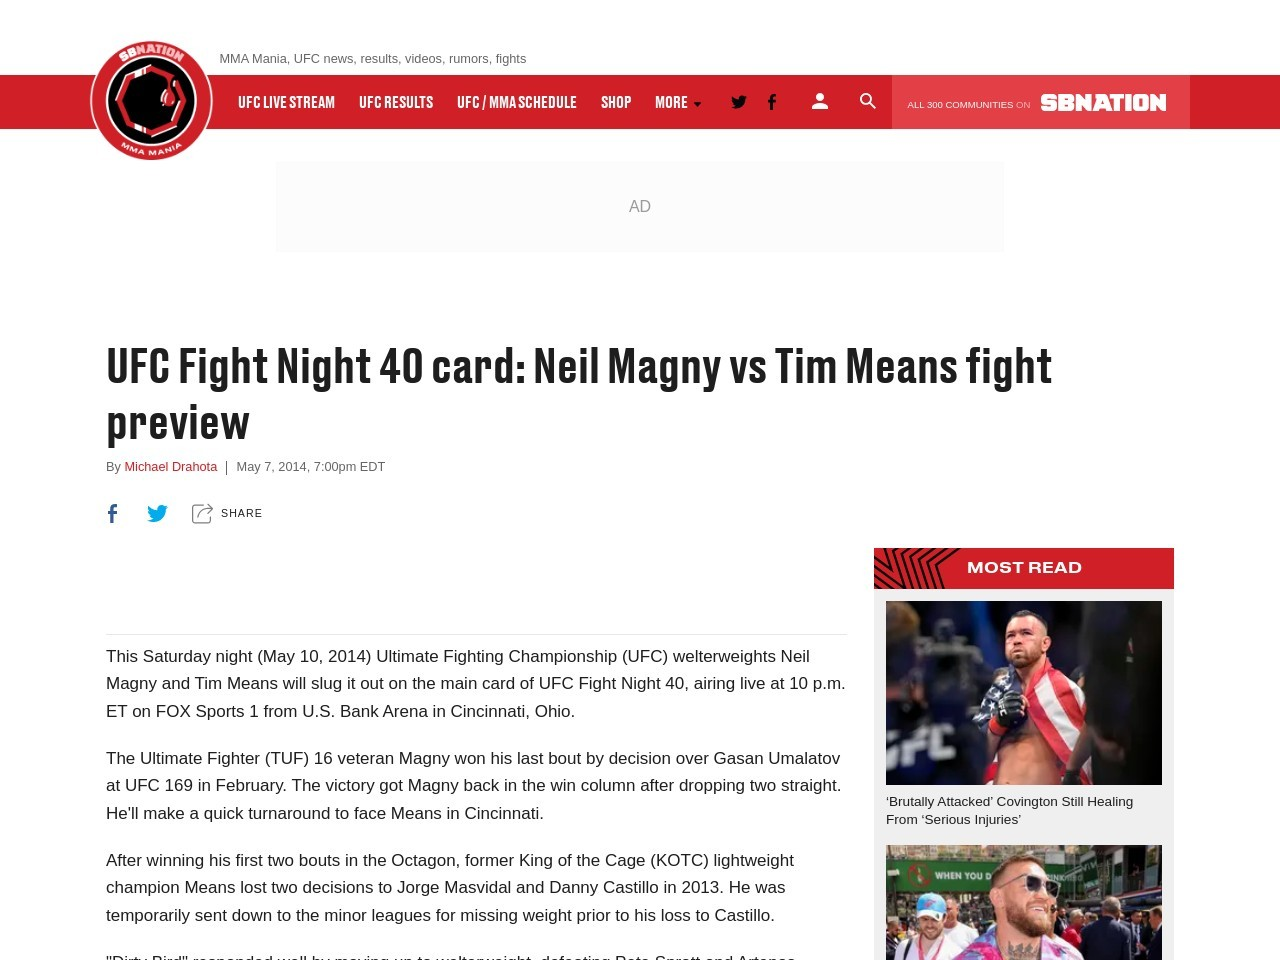 UFC Fight Night 40 card: Neil Magny vs Tim Means fight preview